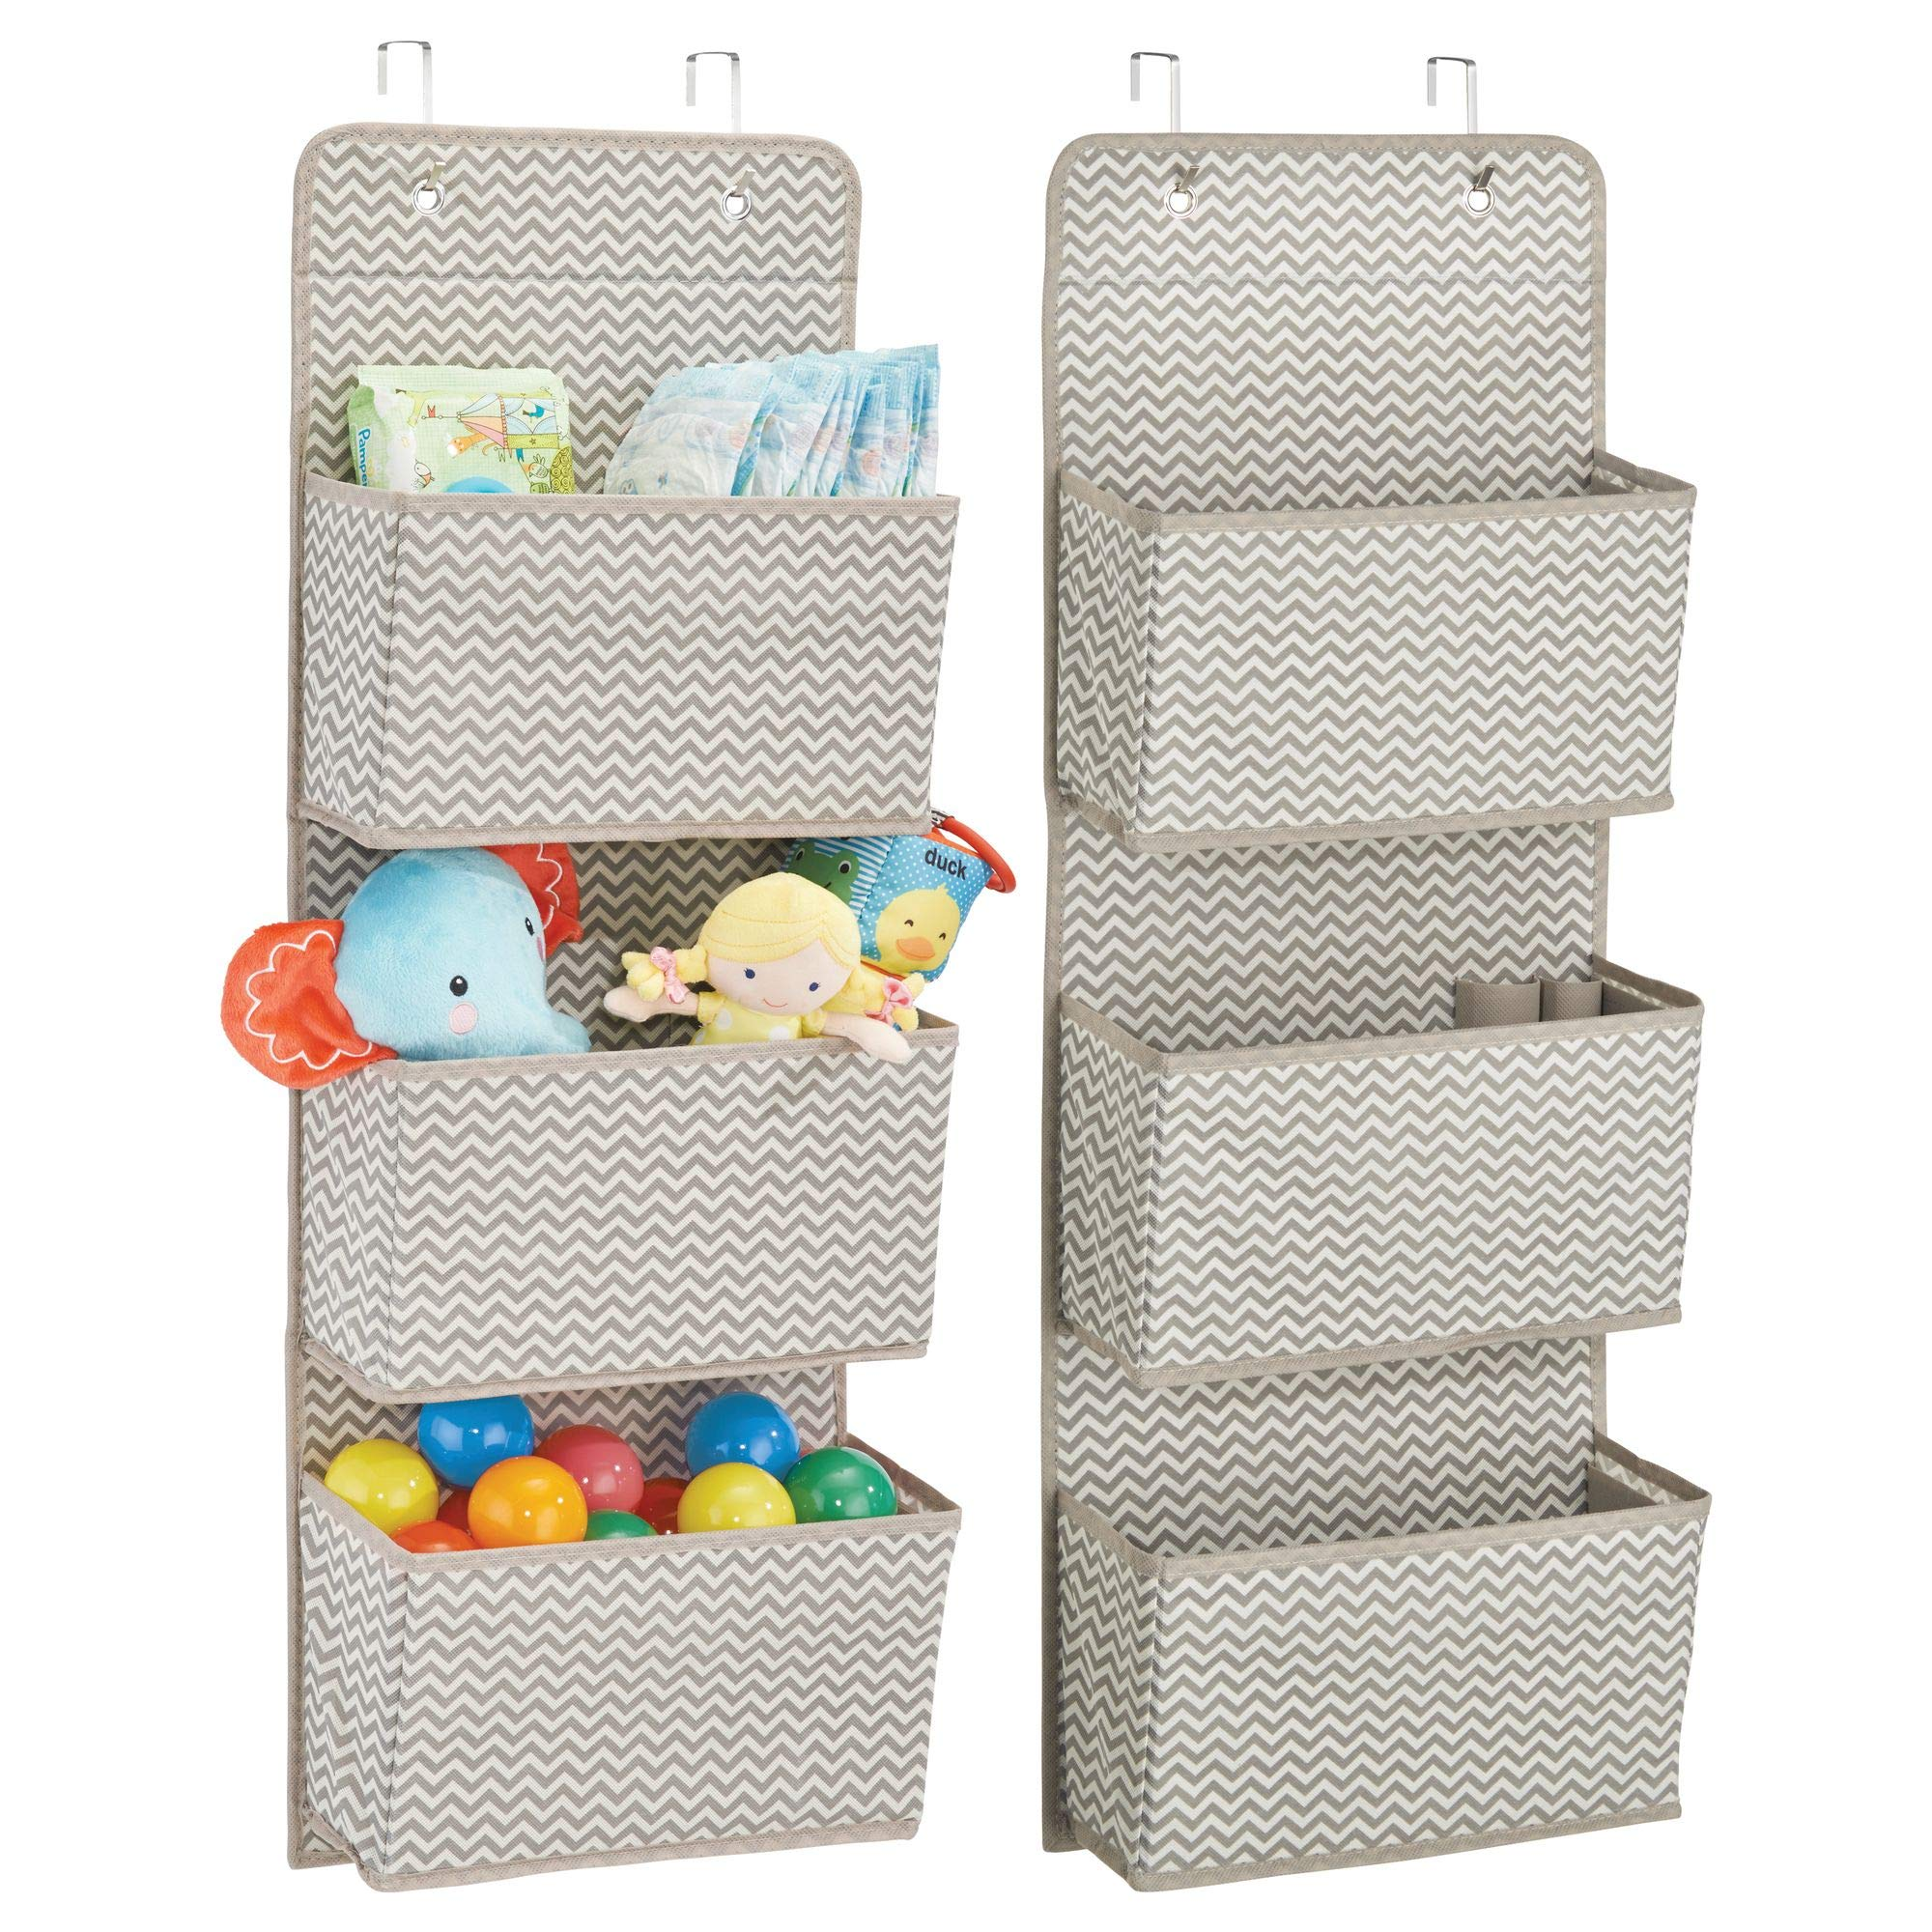 mDesign Over Door Fabric Baby Nursery Closet Organizer for Stuffed Animals, Diapers, Wipes, Towels - Pack of 2, 3 Pockets Each, Taupe/Natural by mDesign